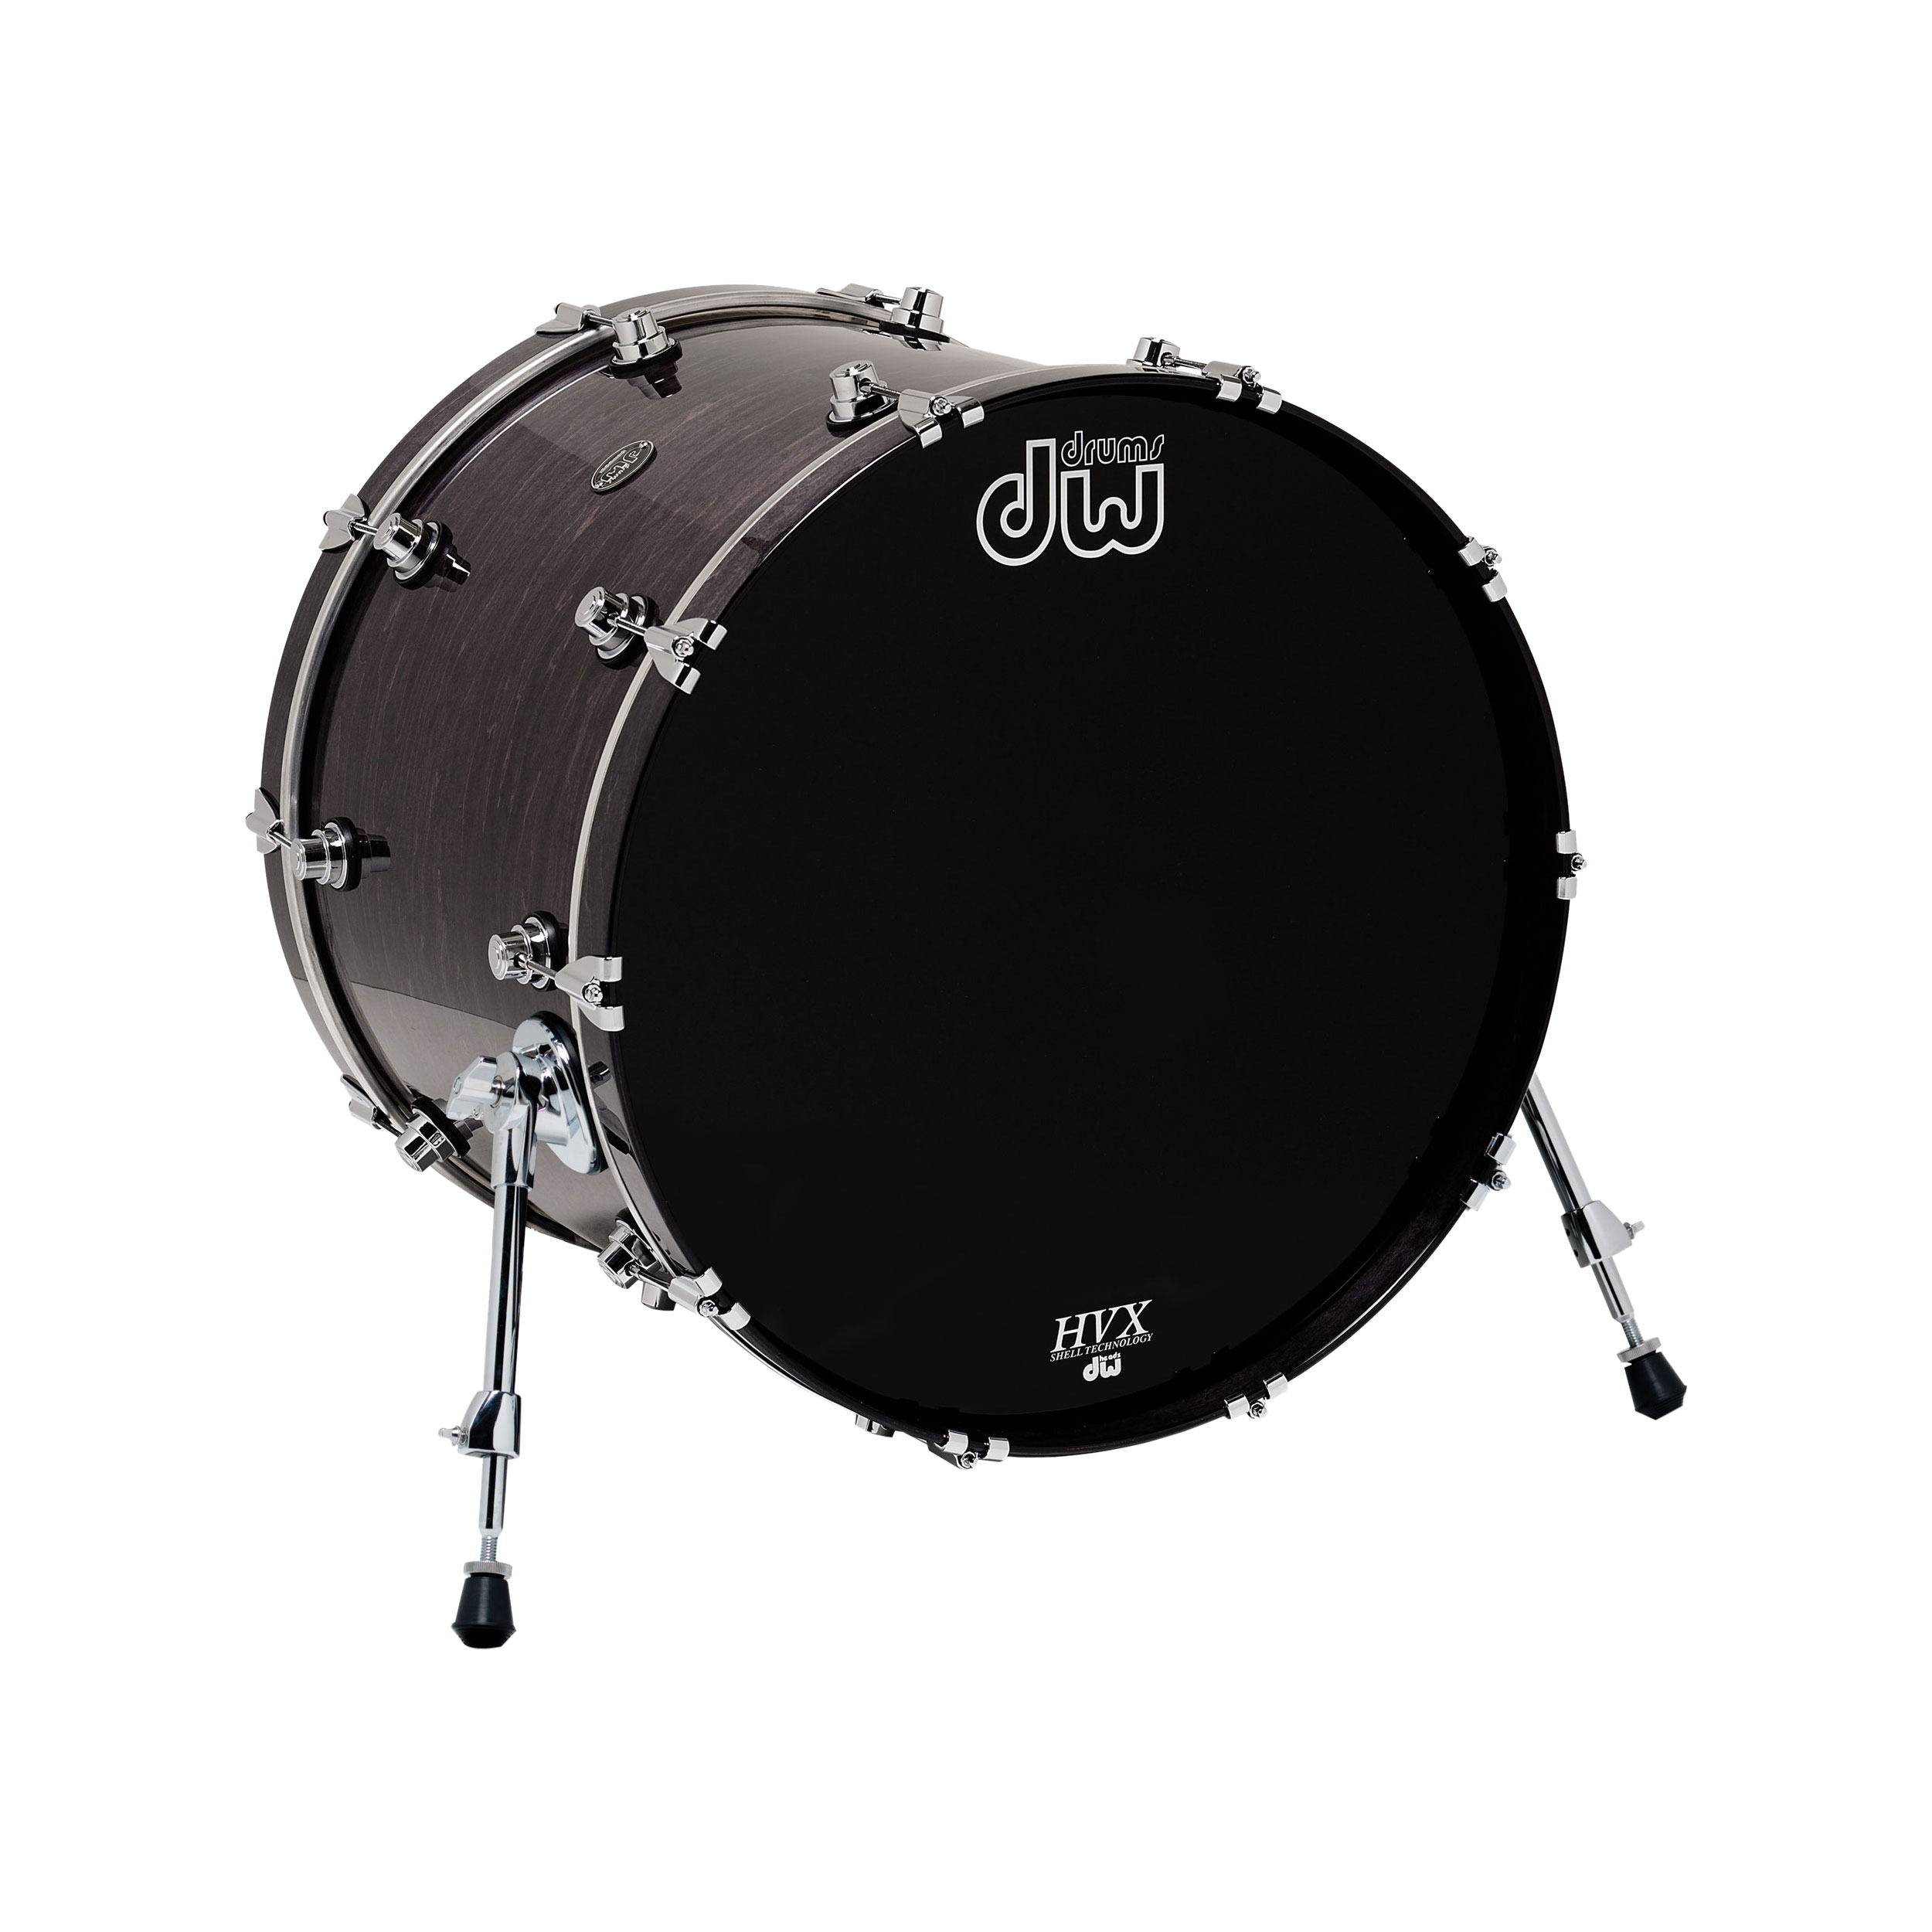 "DW 16"" (Deep) x 20"" (Diameter) Performance Series Bass Drum"